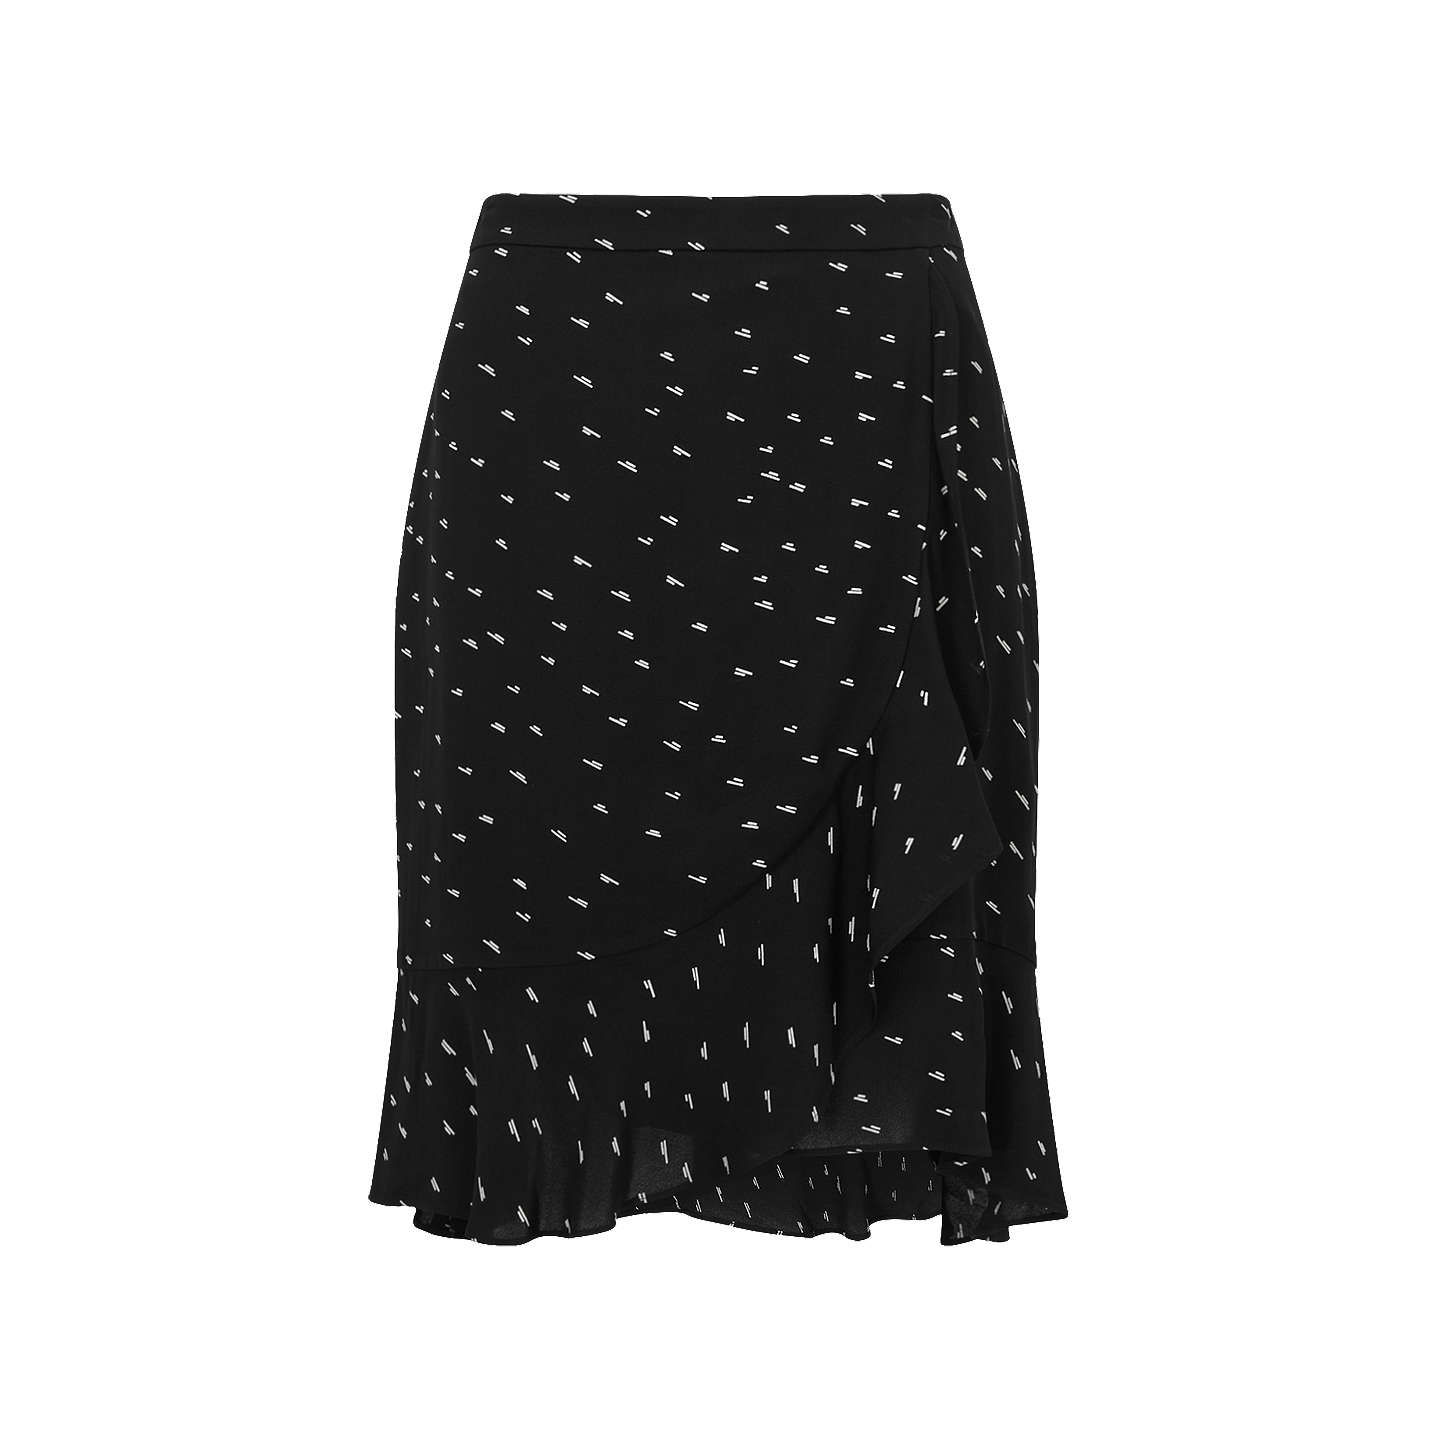 Cheap Sale Fashion Style Low Price Fee Shipping For Sale Mini Dash Wrap Skirt Jigsaw Latest Online Discount Sale Buy Cheap Huge Surprise vXCreUO